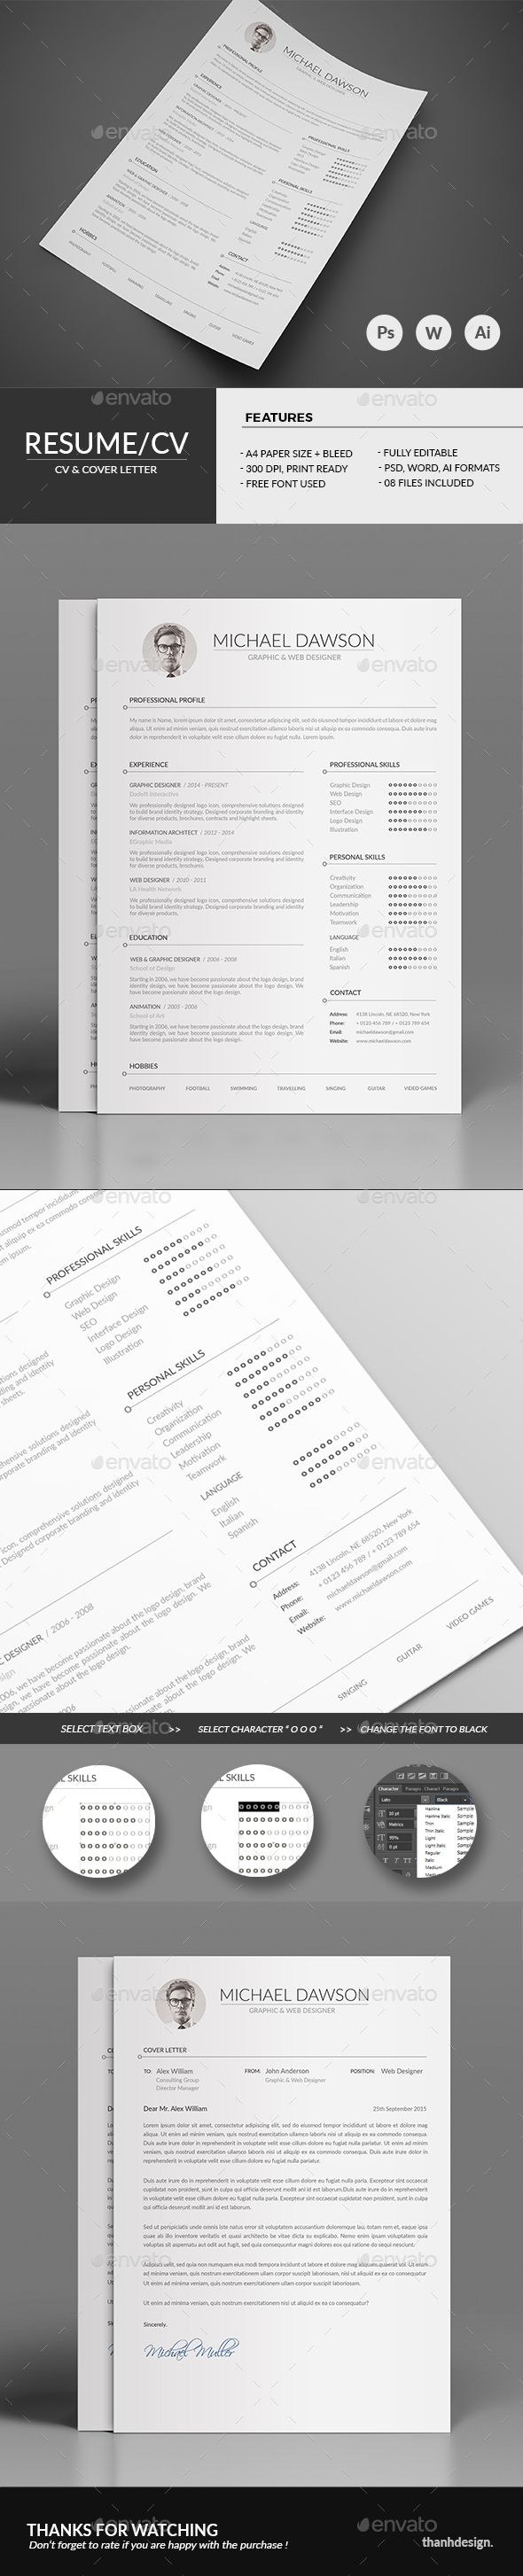 Resume CV & Cover Letter — Photoshop PSD #resume design #professional • Available here → https://graphicriver.net/item/resume-cv-cover-letter/13449677?ref=pxcr